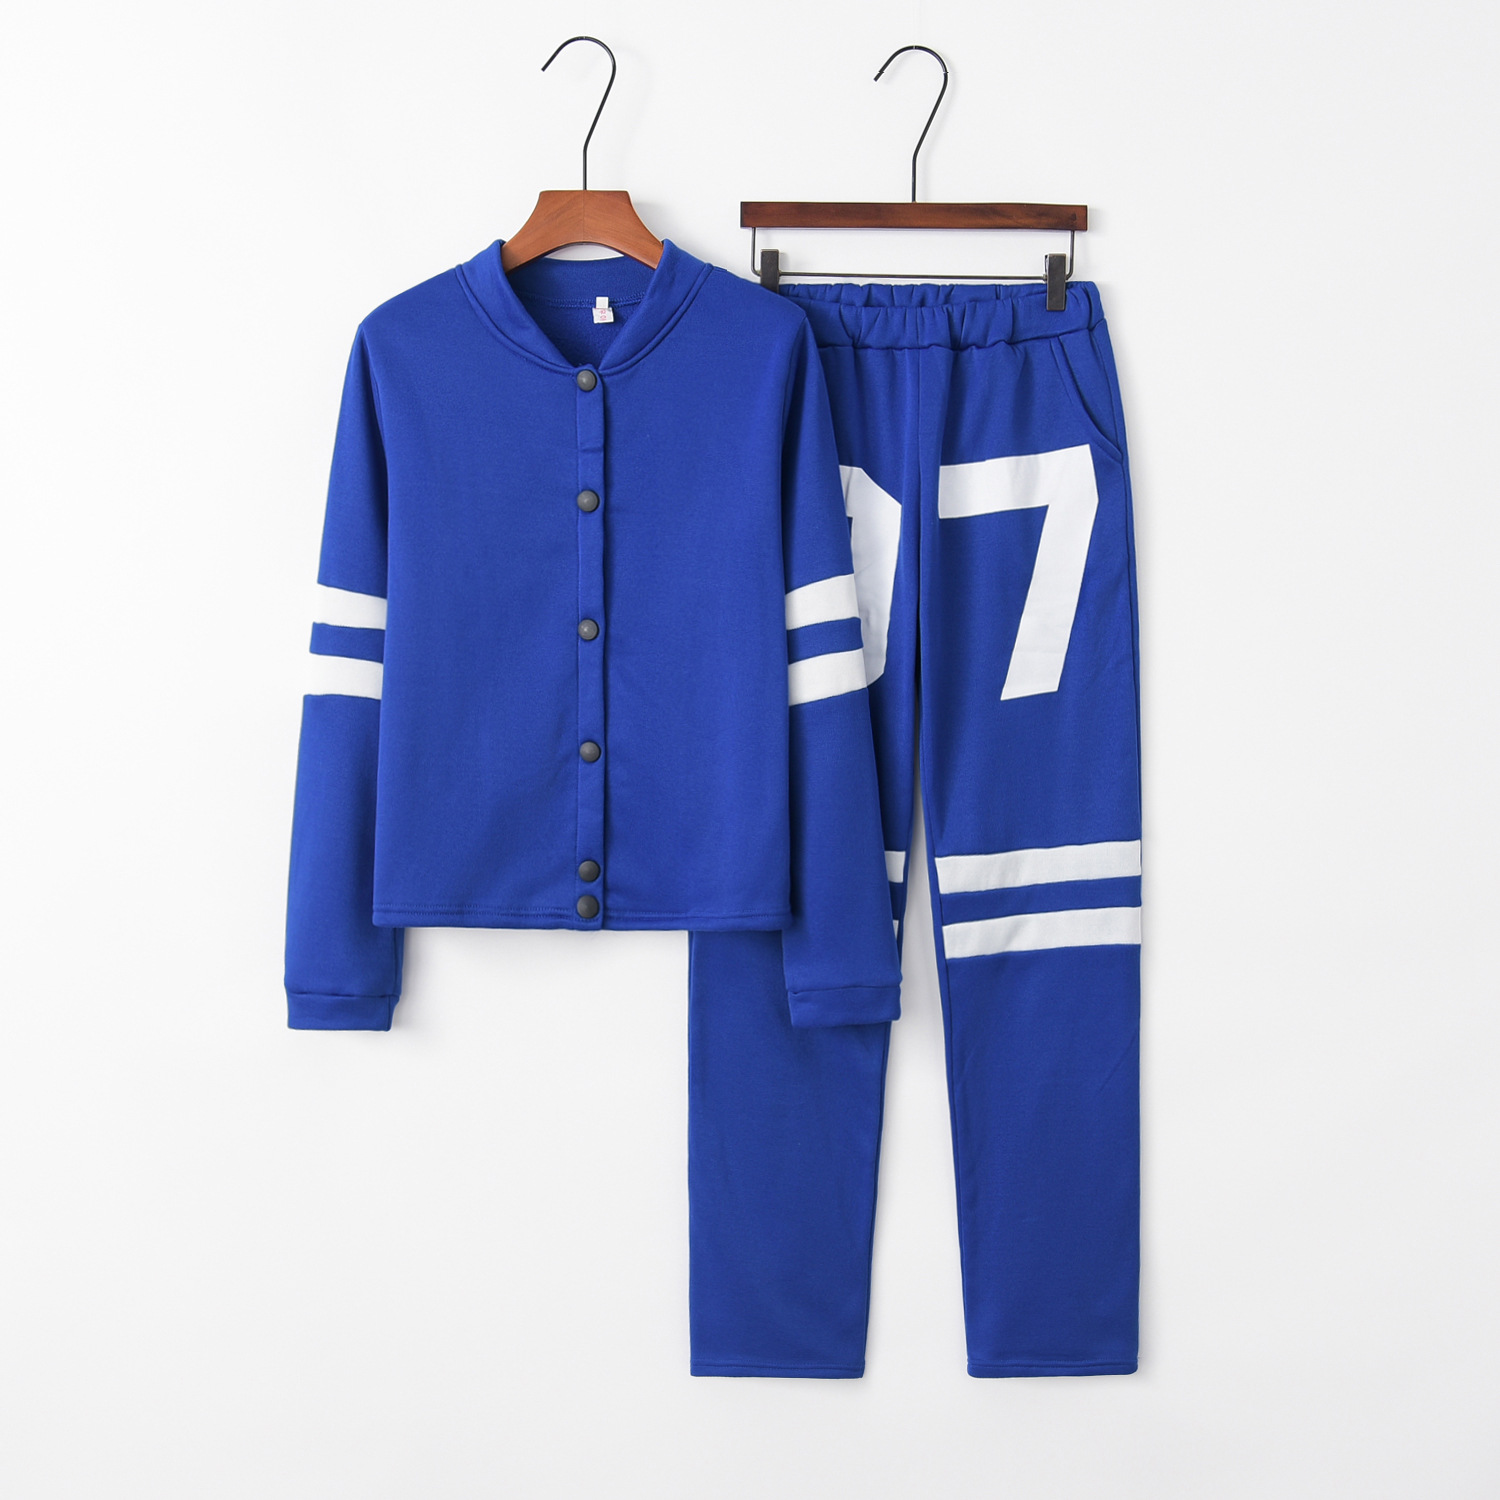 Number 07 2020 New Design Fashion Hot Sale Suit Set Women Tracksuit Two-piece Style Outfit Sweatshirt Sport Wear